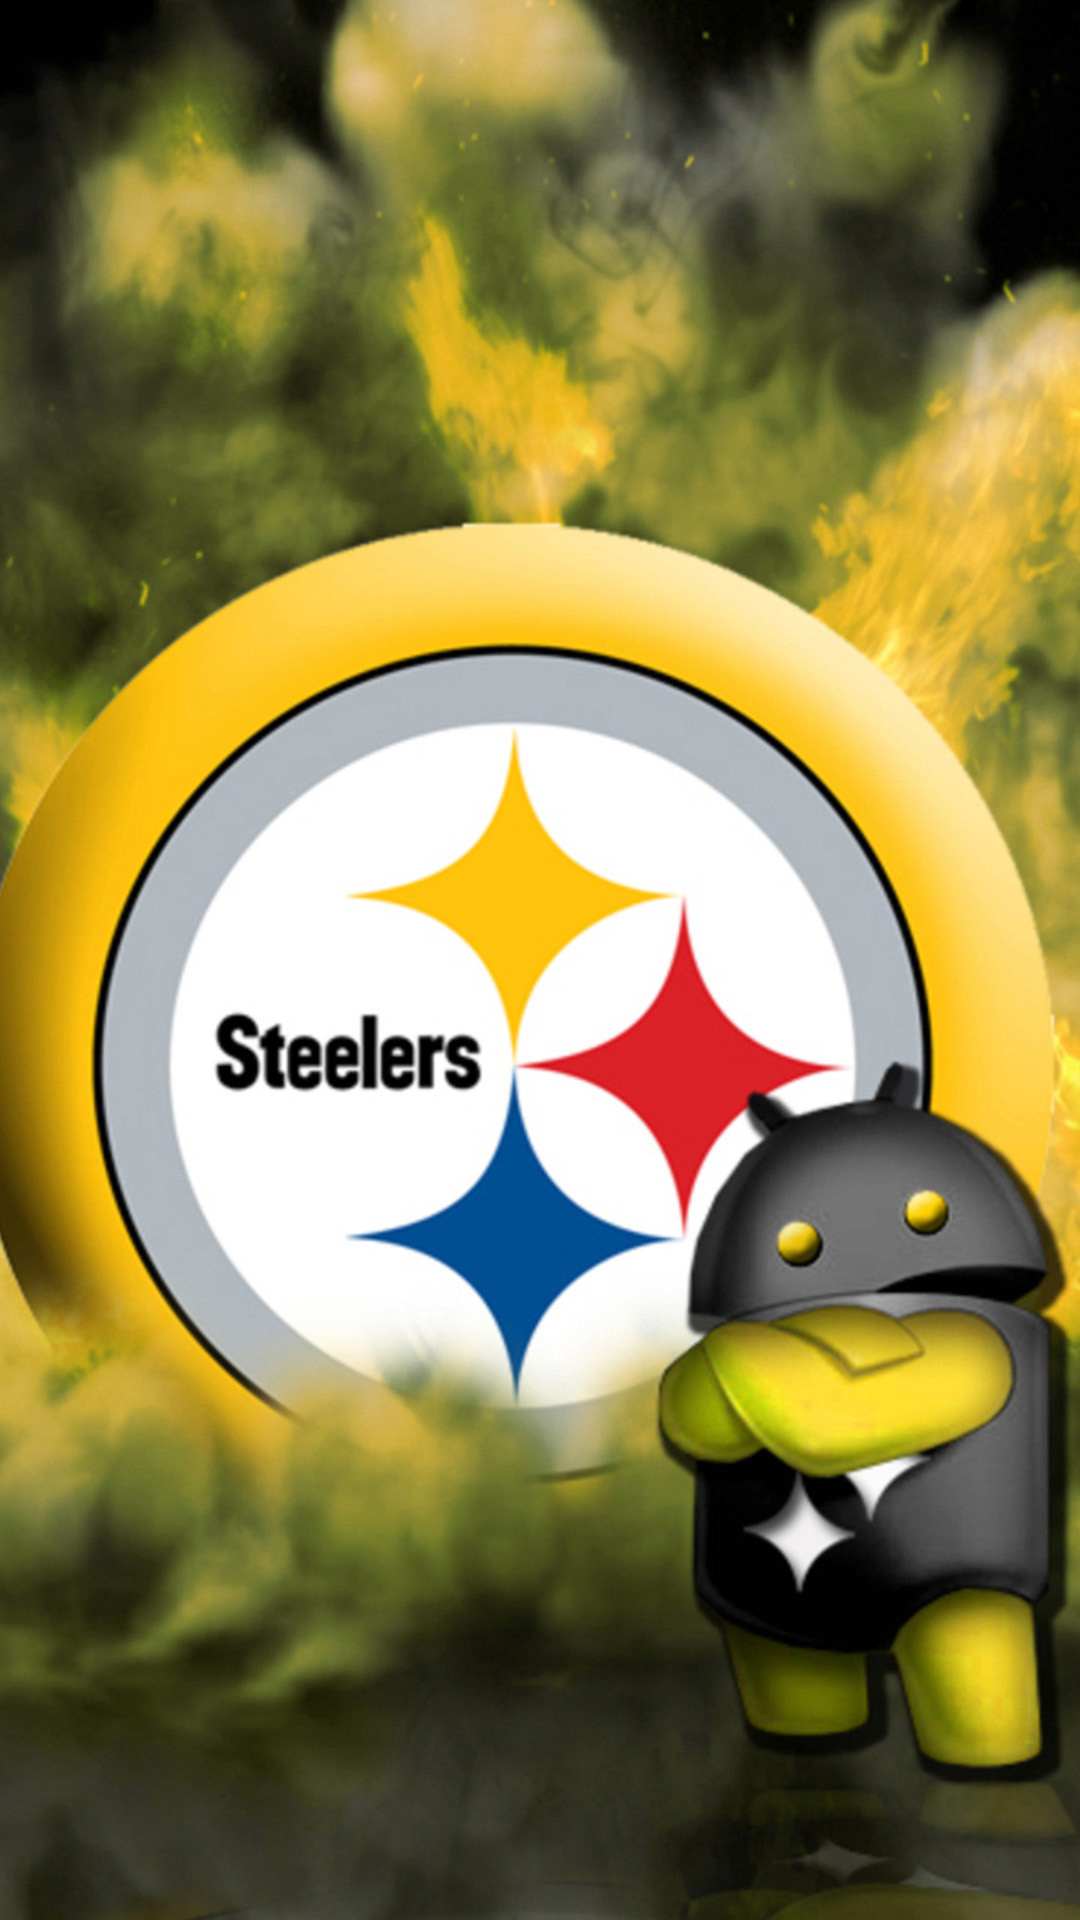 Best Looking Car Wallpaper Animated Steelers Wallpaper 57 Images